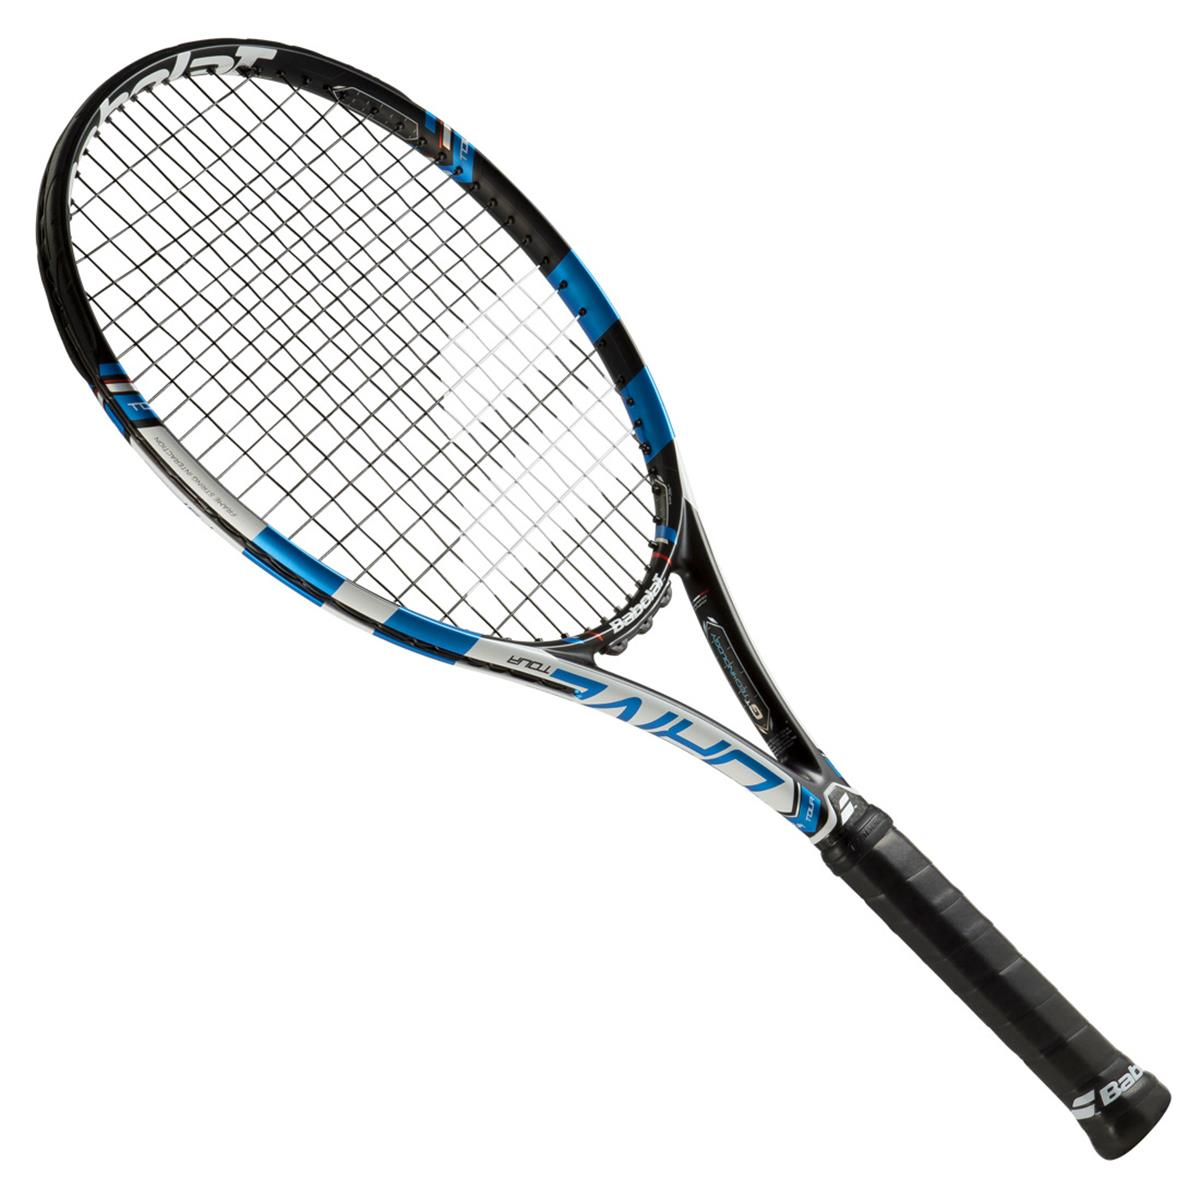 Babolat Pure Drive Tour GT Plus Tennis Racket | Direct Tennis